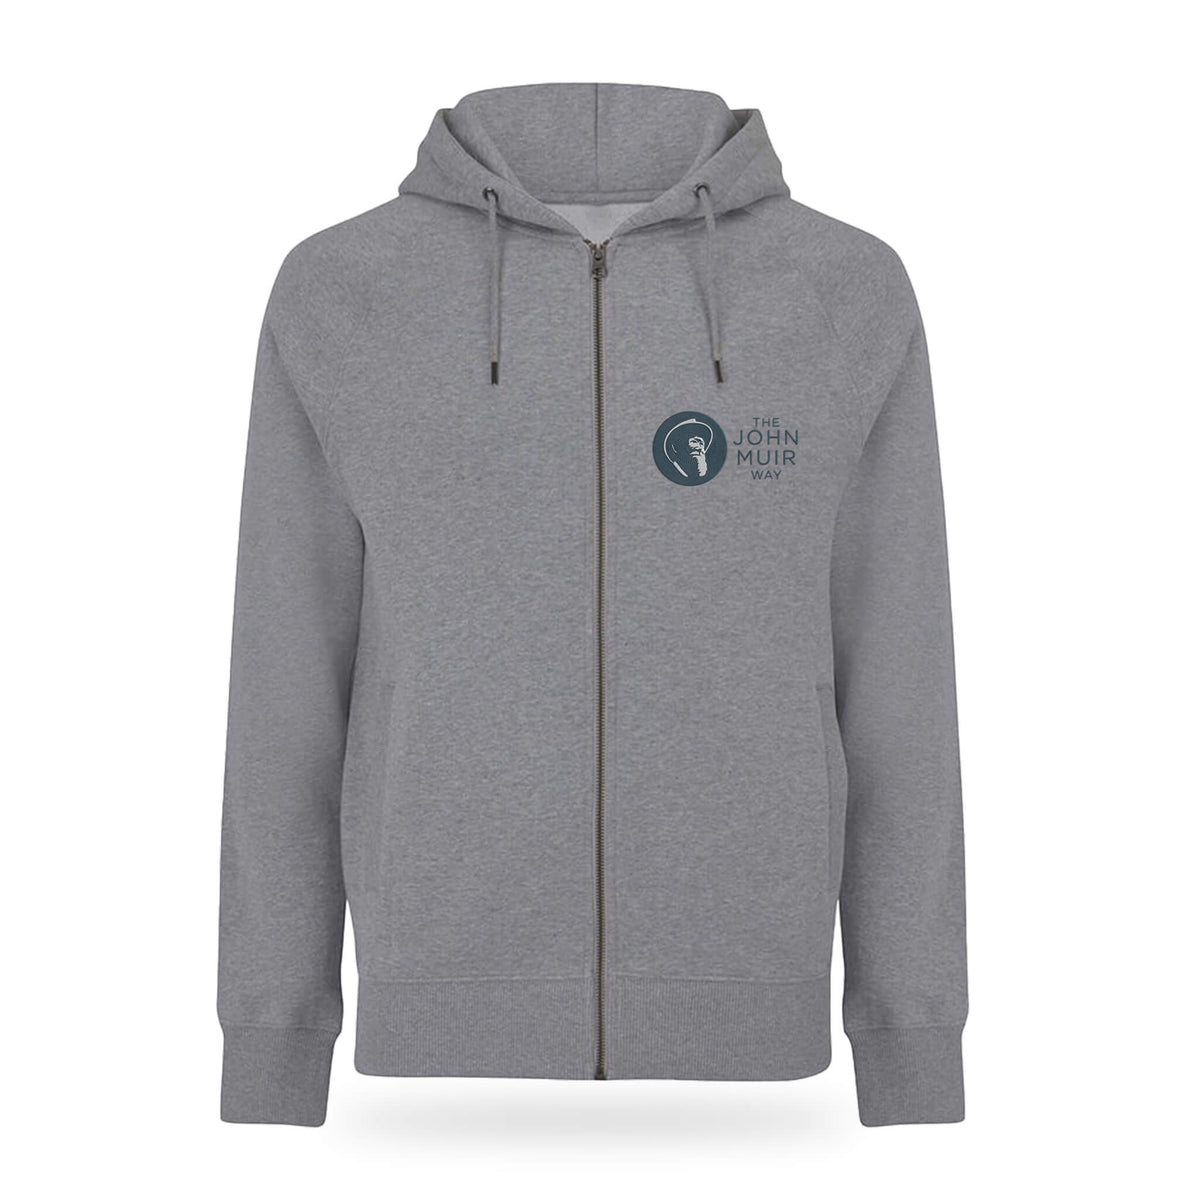 john muir way embroidered zip hoodie grey